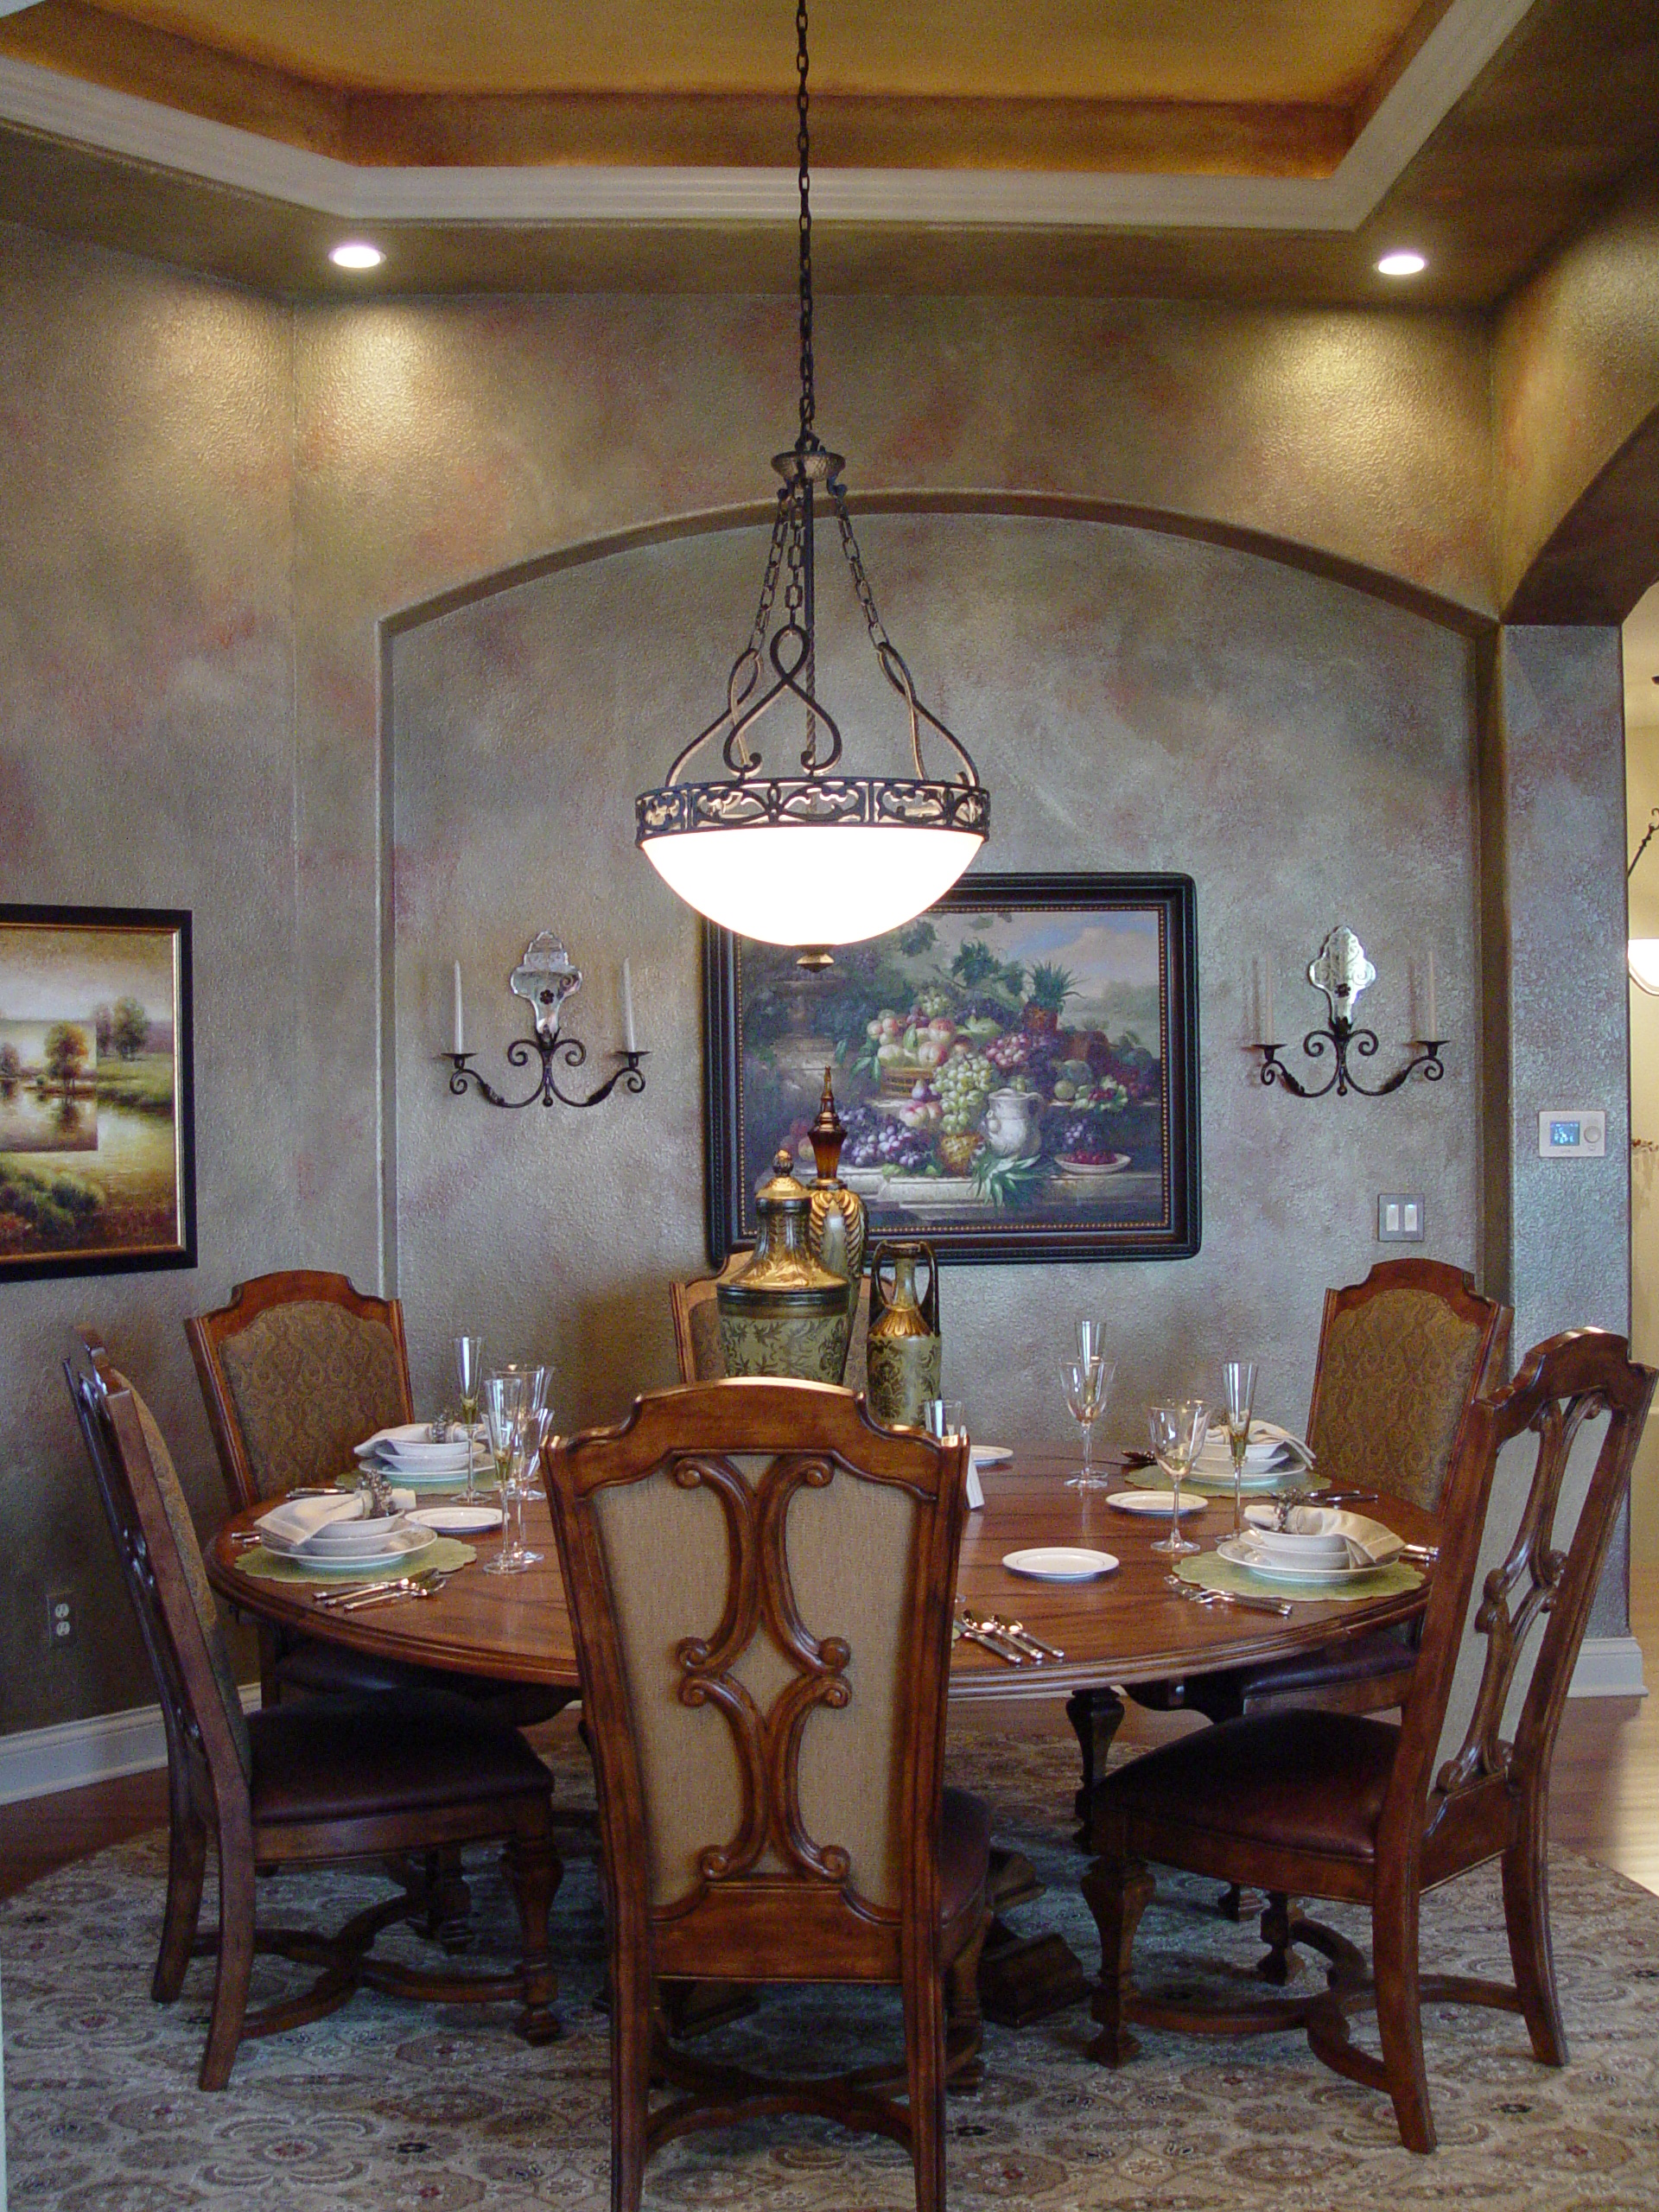 Dining room design ideas interior design firm for Dining room niche ideas